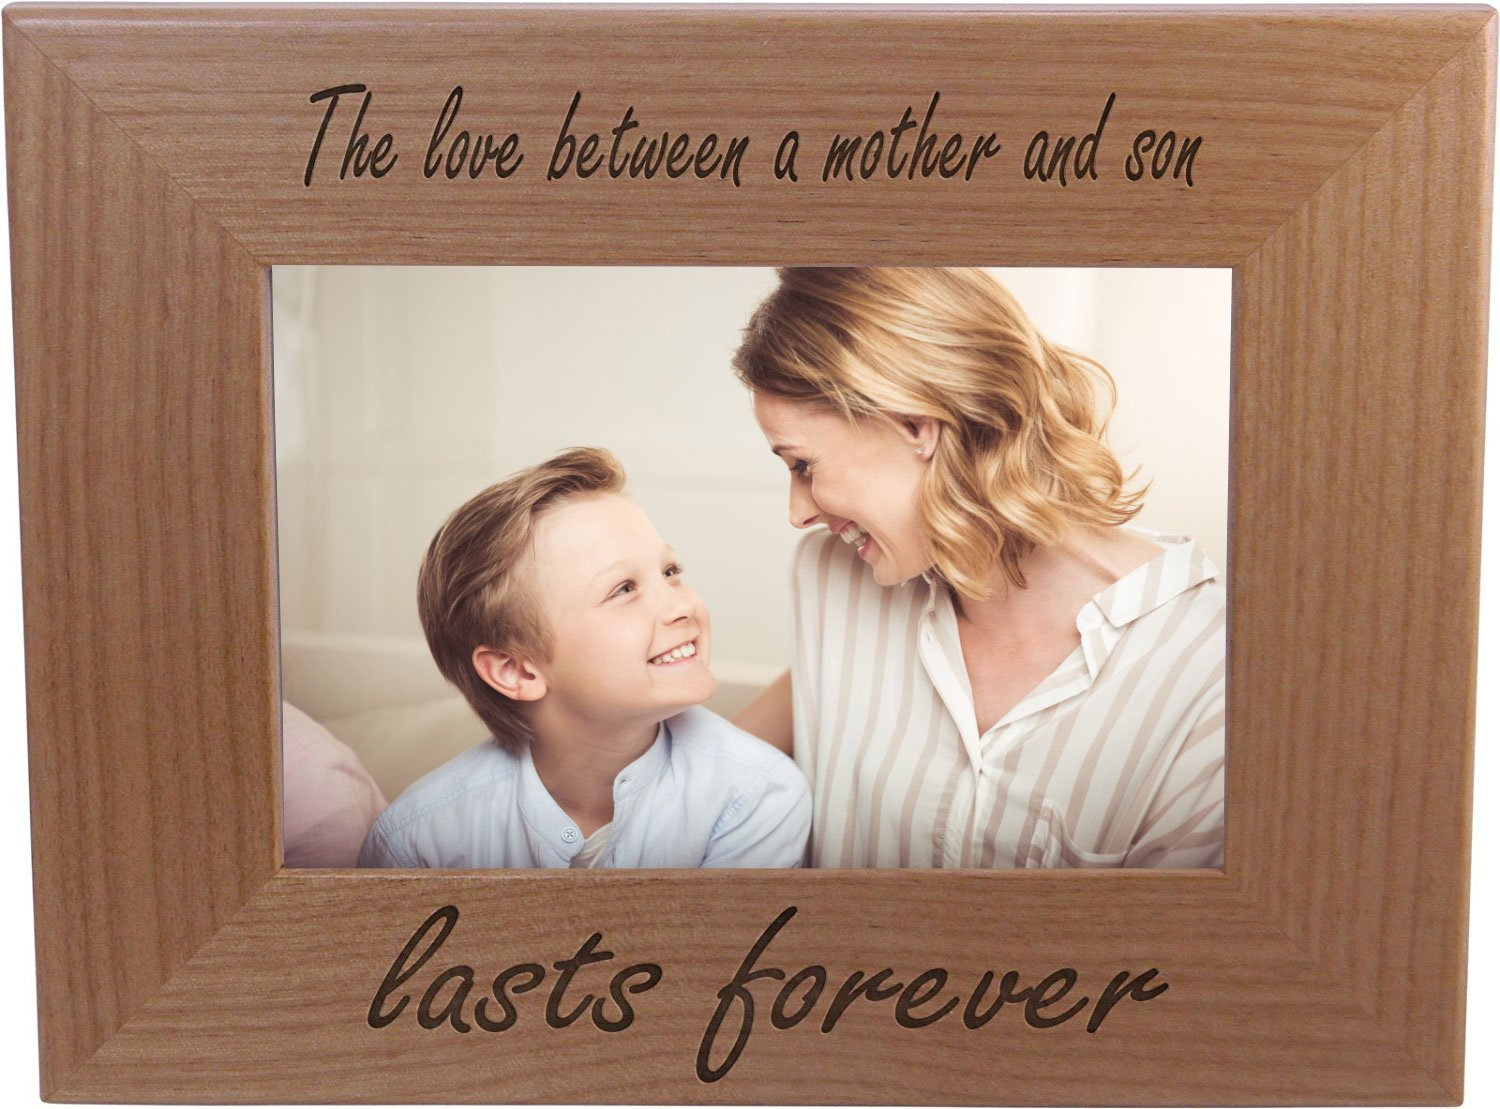 The Love Between A Mother And Son Lasts Forever 4x6 Inch Wood Picture Frame - Great Gift for Mothers's Day, Birthday or Christmas Gift for Mom Grandma Wife Grandmother CustomGiftsNow